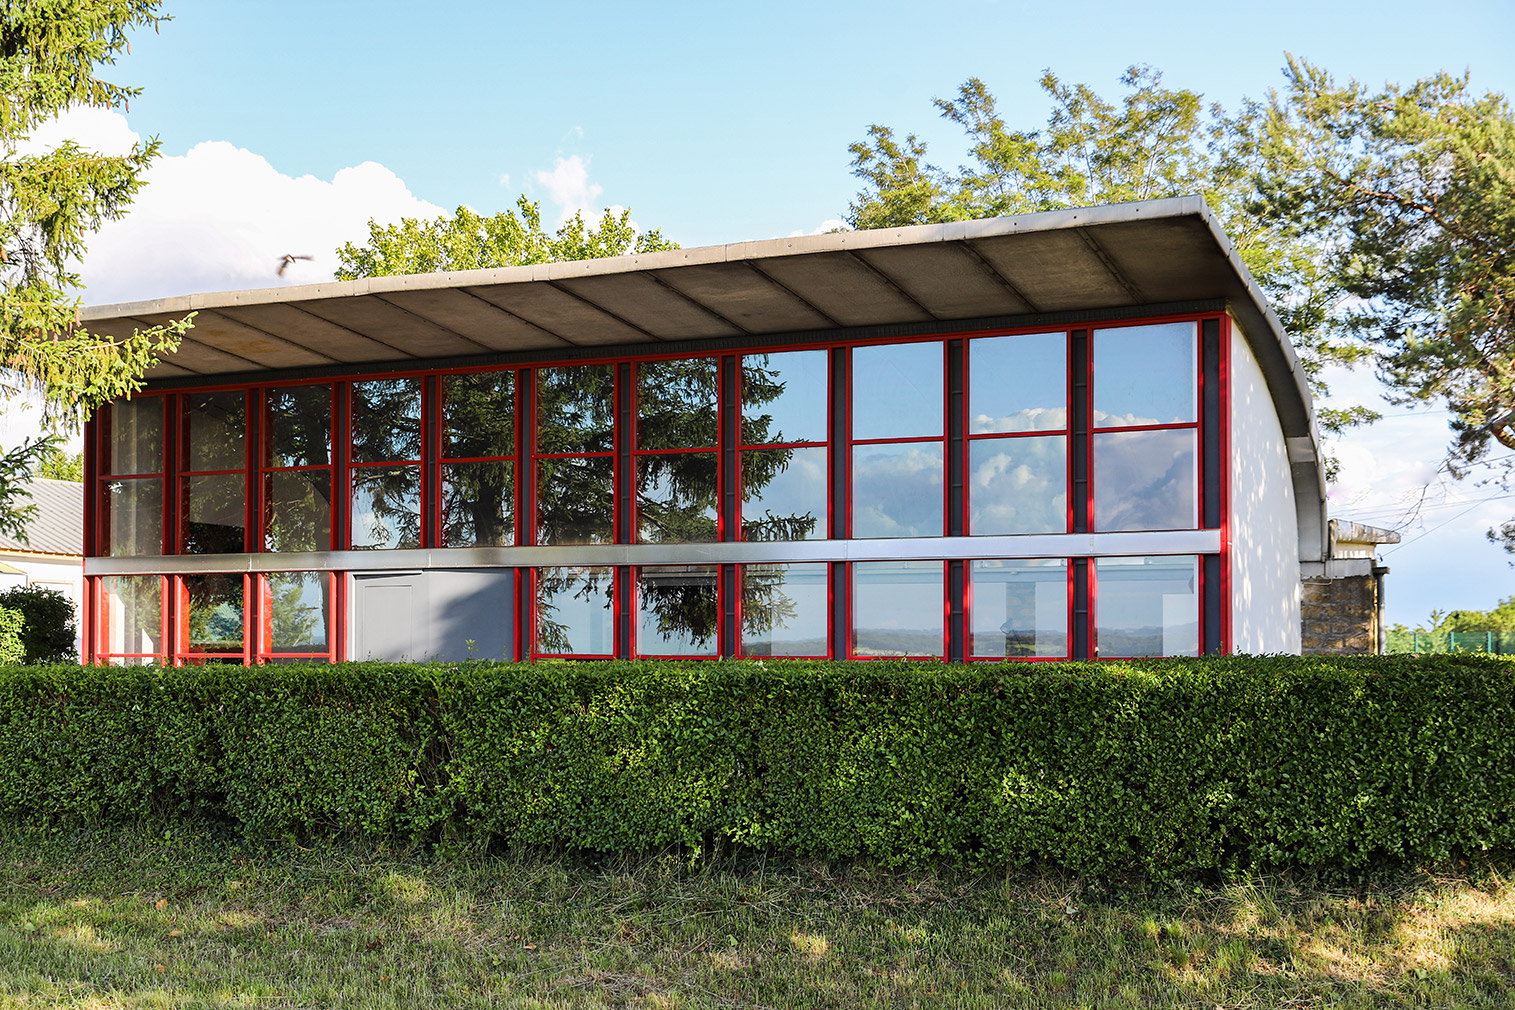 Stay in a former aerodrome clubhouse designed by Prouve and Le Corbusier